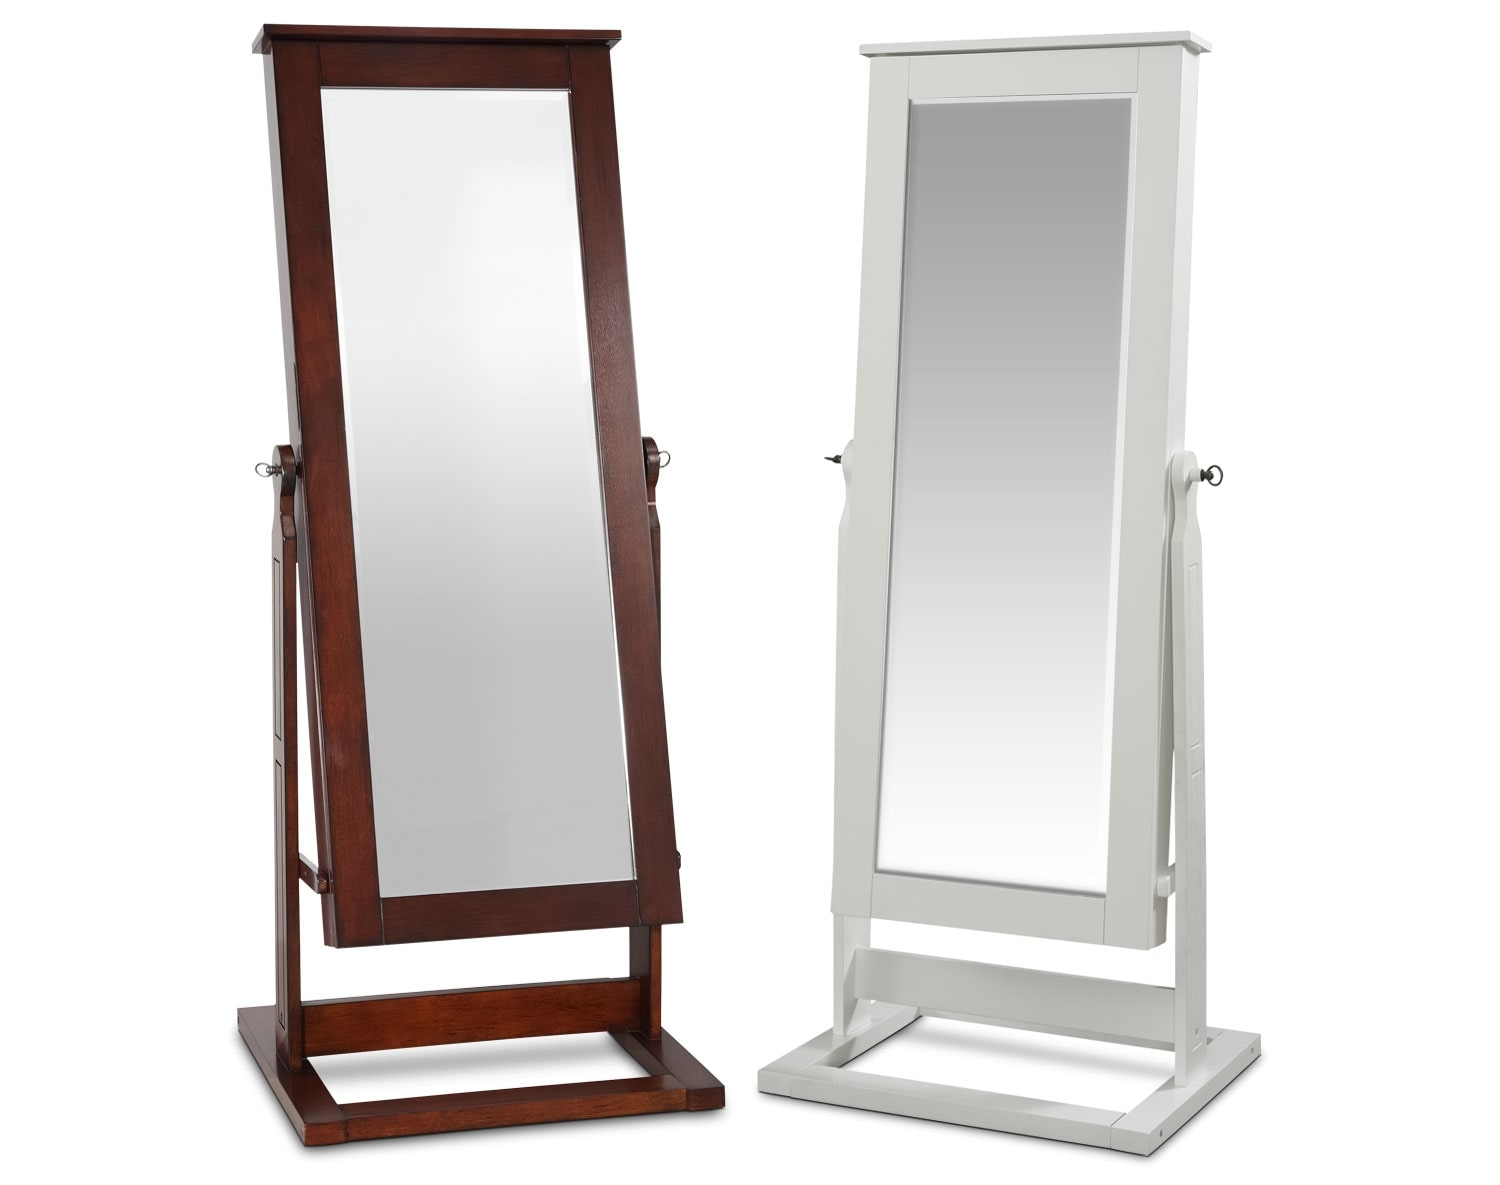 The Perrie Cheval Storage Mirror